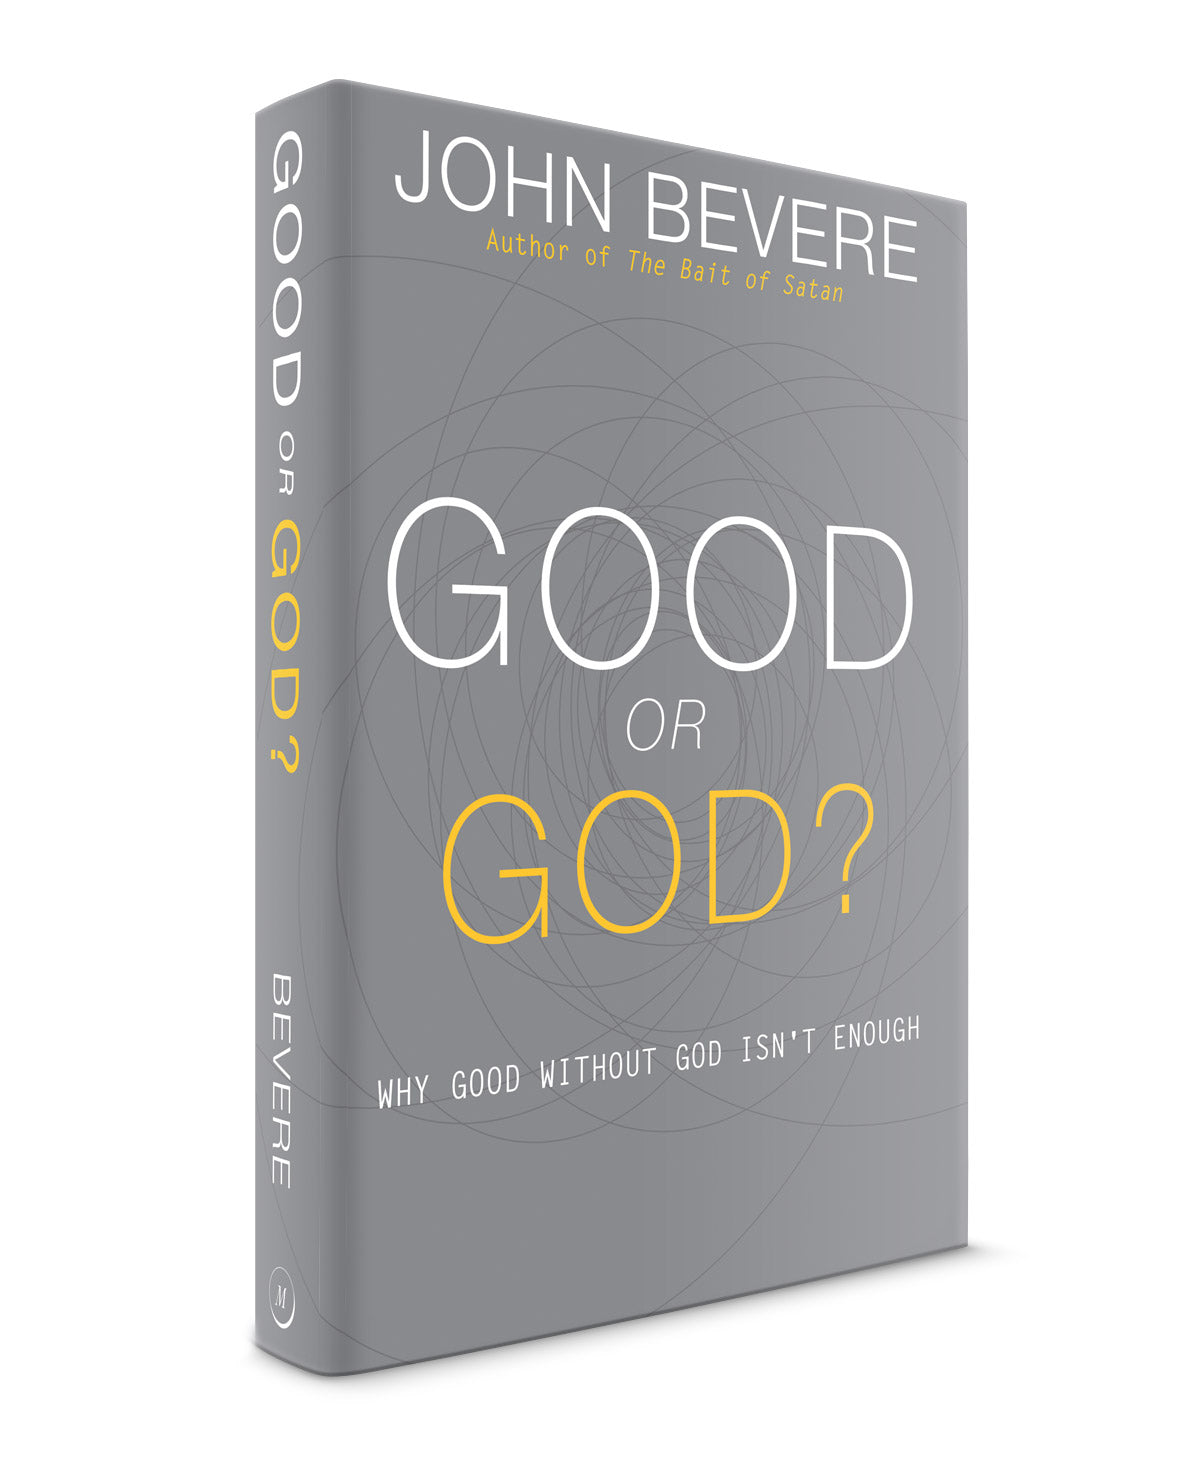 Good or God? - Hardcover